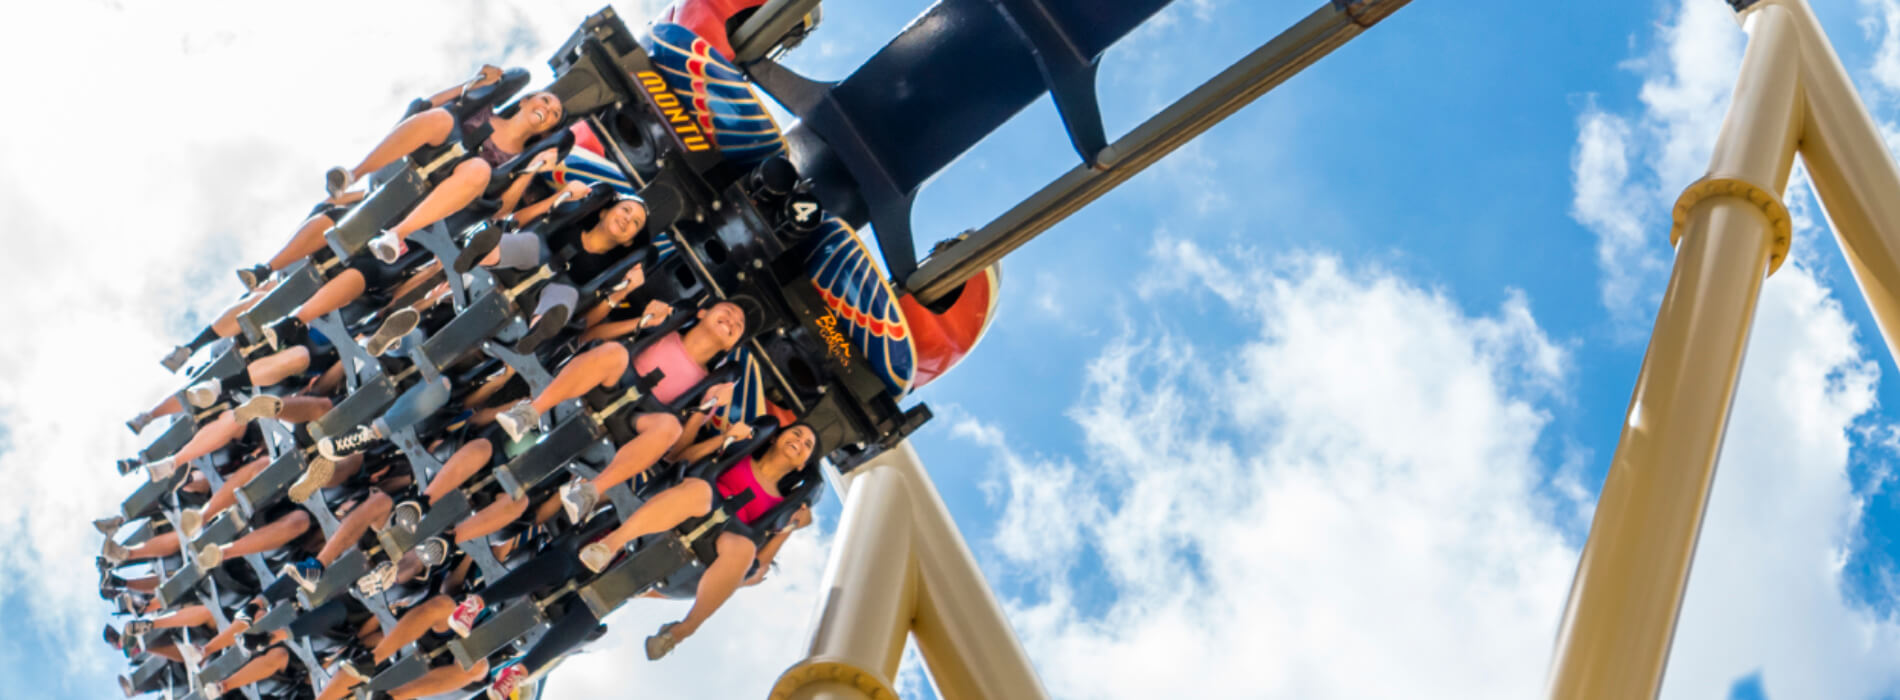 A group of riders enjoy an inverted roller coaster called Montu at Busch Gardens Tampa Bay, located in Florida